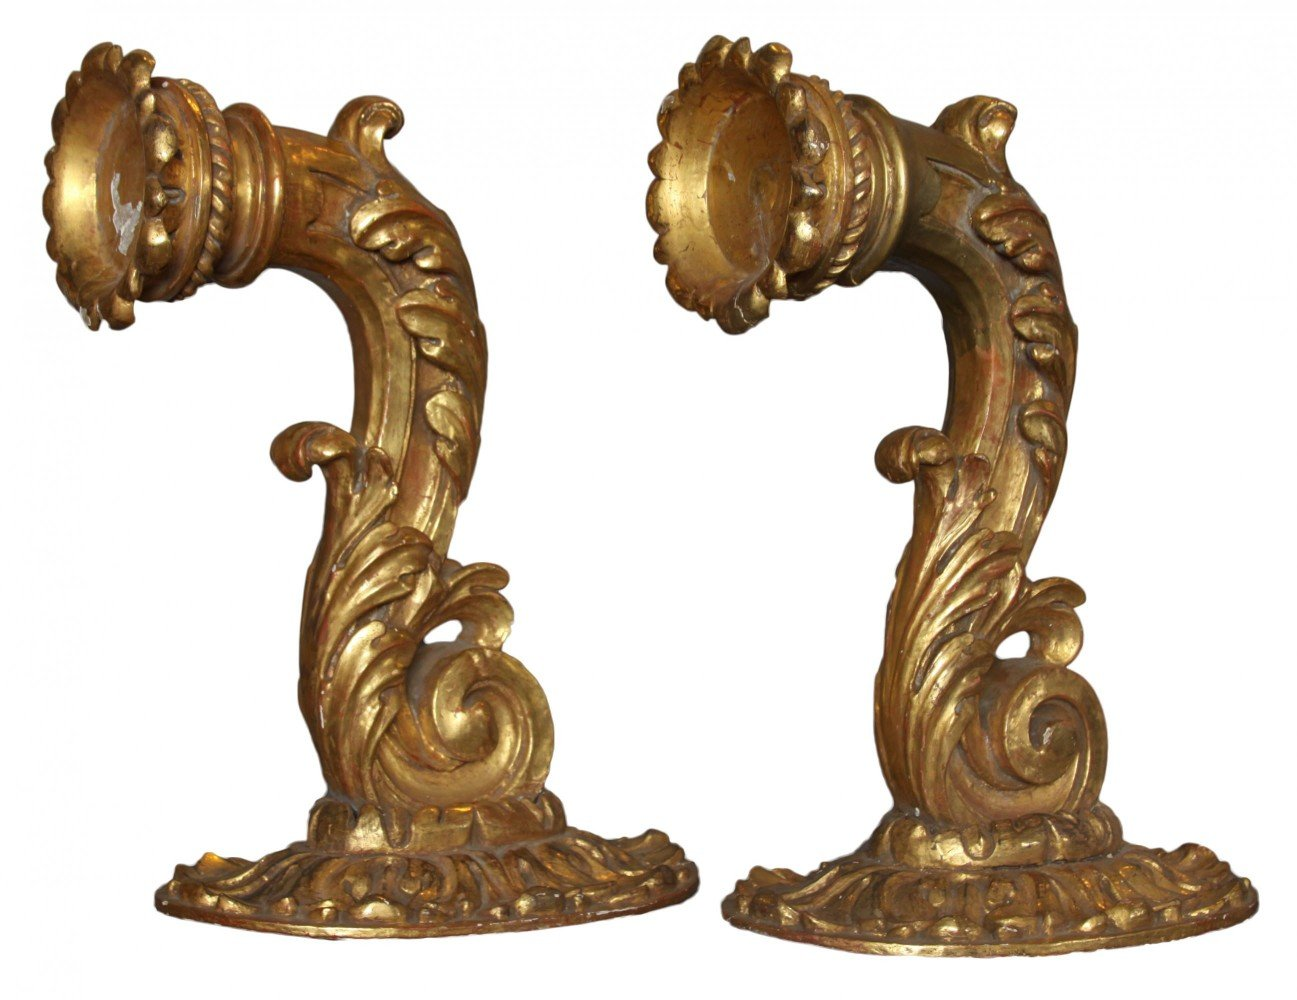 A Pair of Italian Gilded Wood Wall Sconces